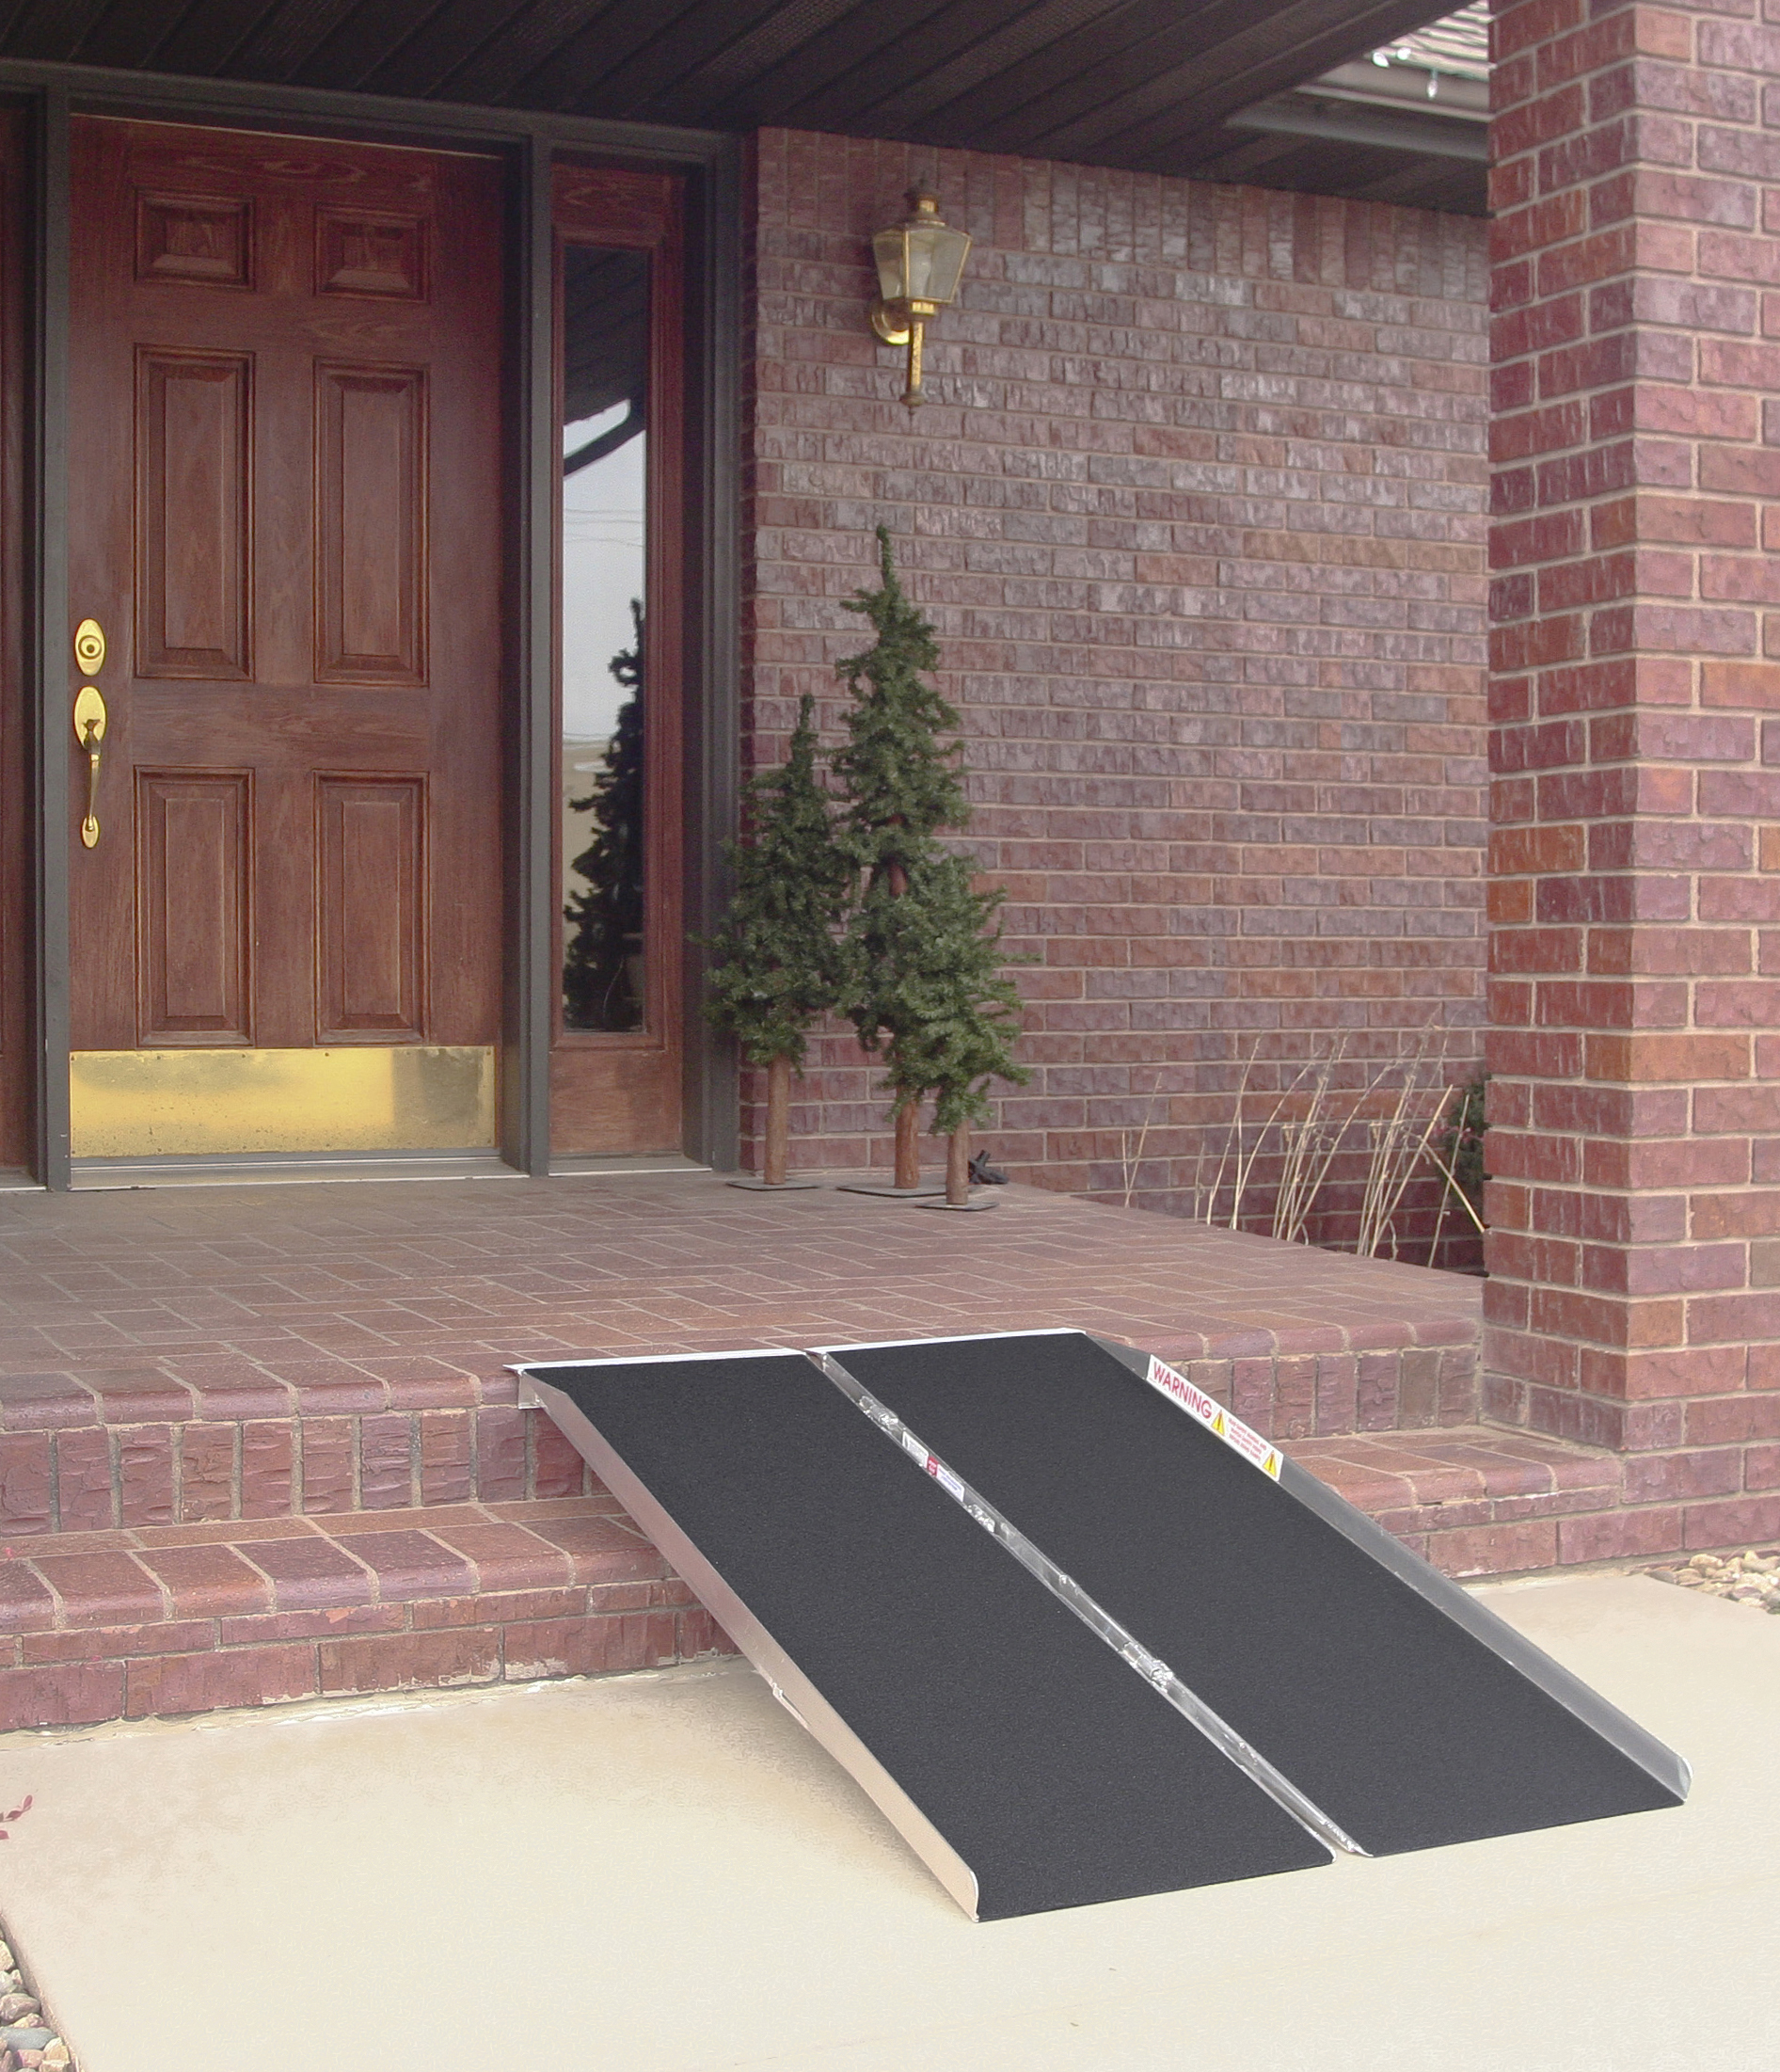 Wheelchair Ramps 38 Amazing Portable Handicap & Aluminum Ramps